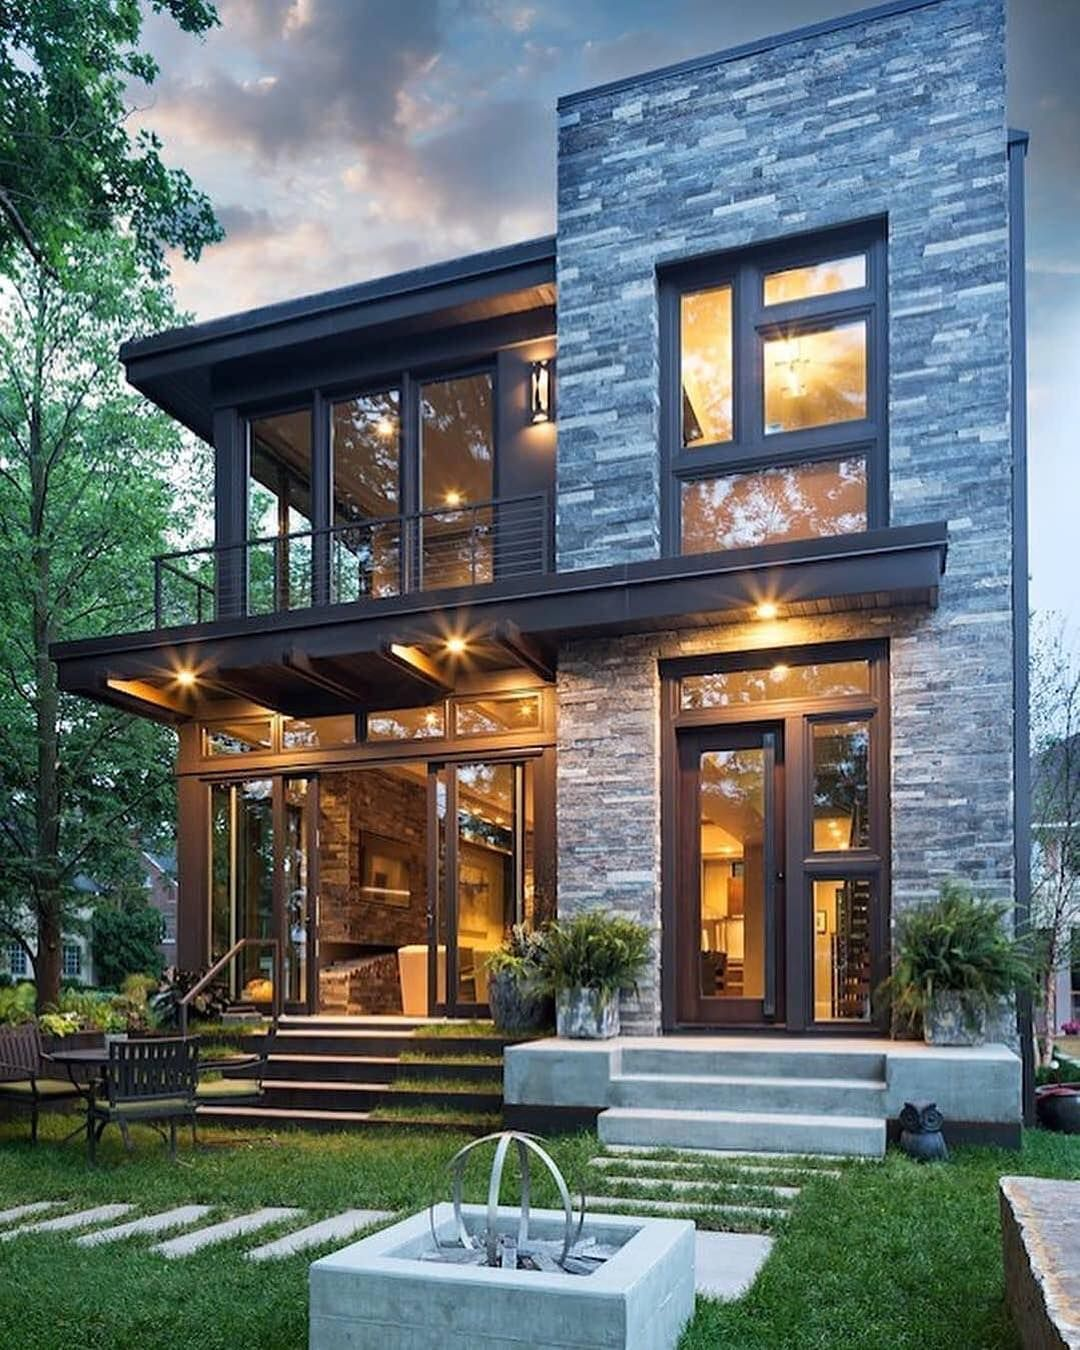 """Modern Organic Home By John Kraemer Sons In Minneapolis Usa: House Exterior On Instagram: """"Lighting Of The House Really Wonderful! Wha Do You Think?? ️ For"""